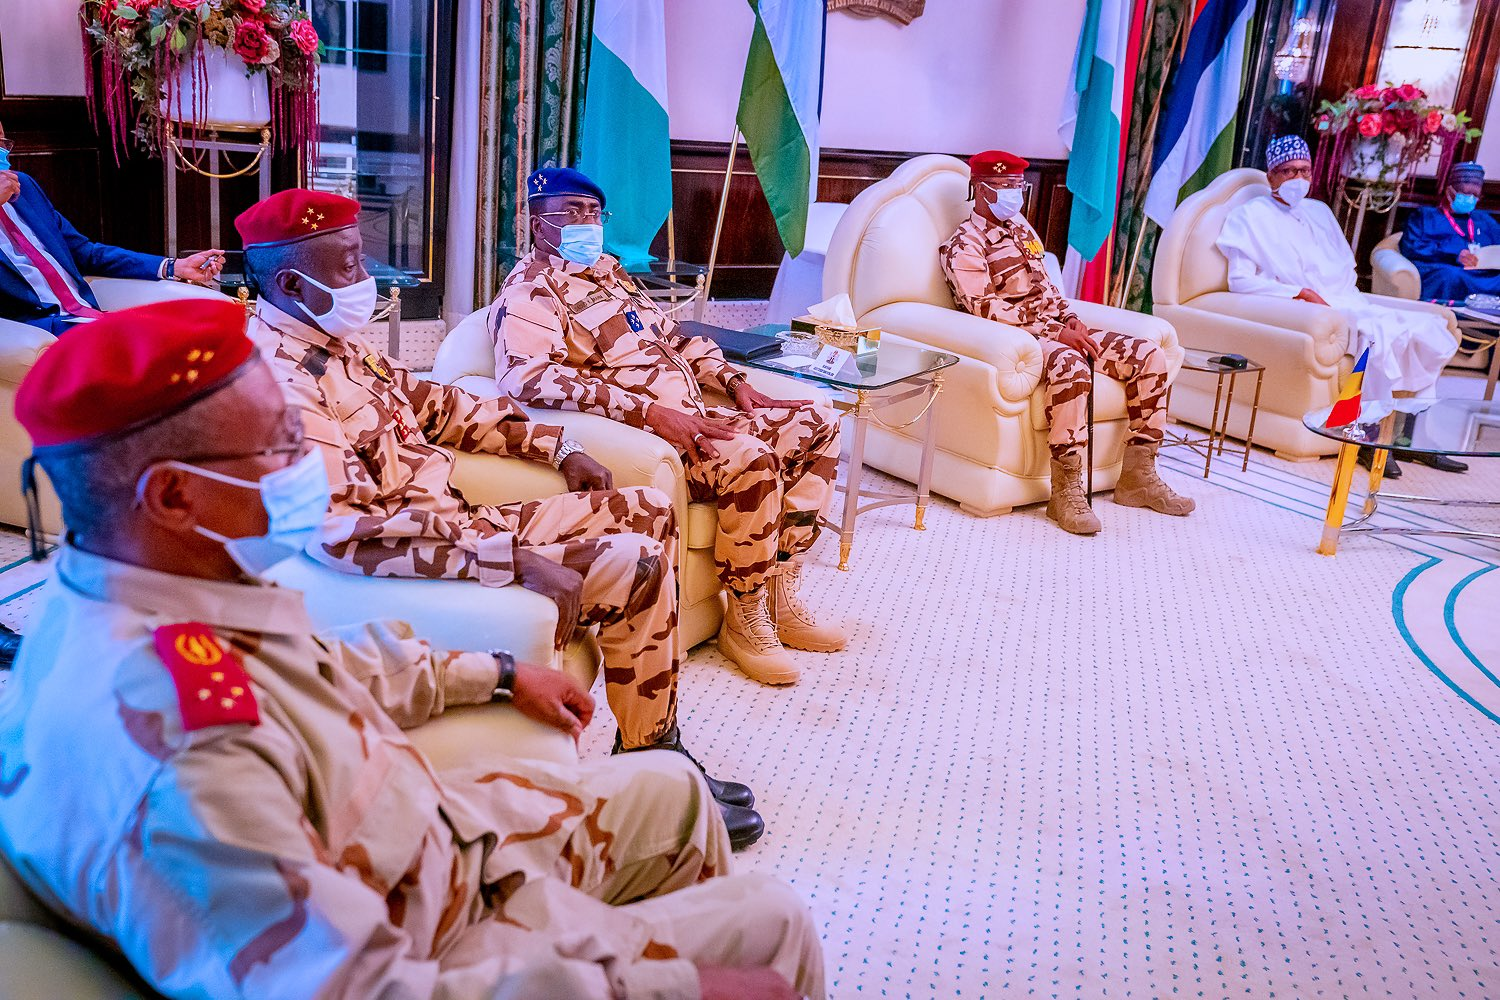 President Muhammadu Buhari received Lt. Gen. Mahamat Idris Deby-Itno, the President, Transitional Military Council of the Republic of Chad at the State House, Abuja. [PHOTO: Presidency]